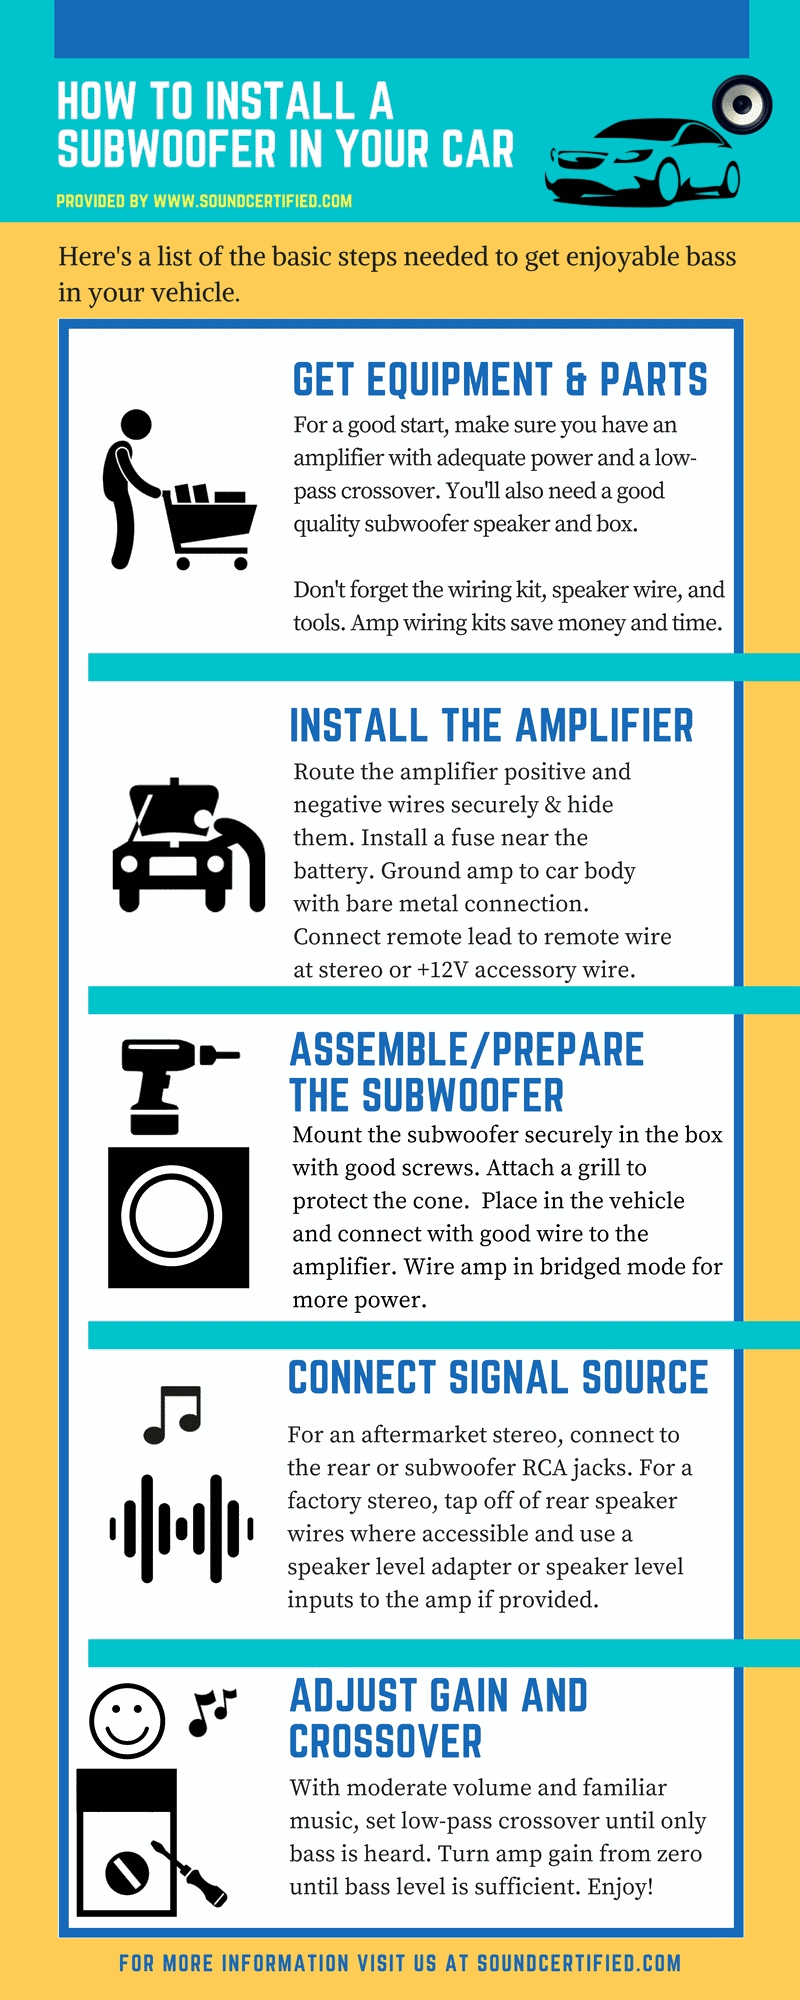 How To Install A Subwoofer And Amp In Your Car The Diy Automotive Wiring General Guide For Electrical Troubleshooting Infographic